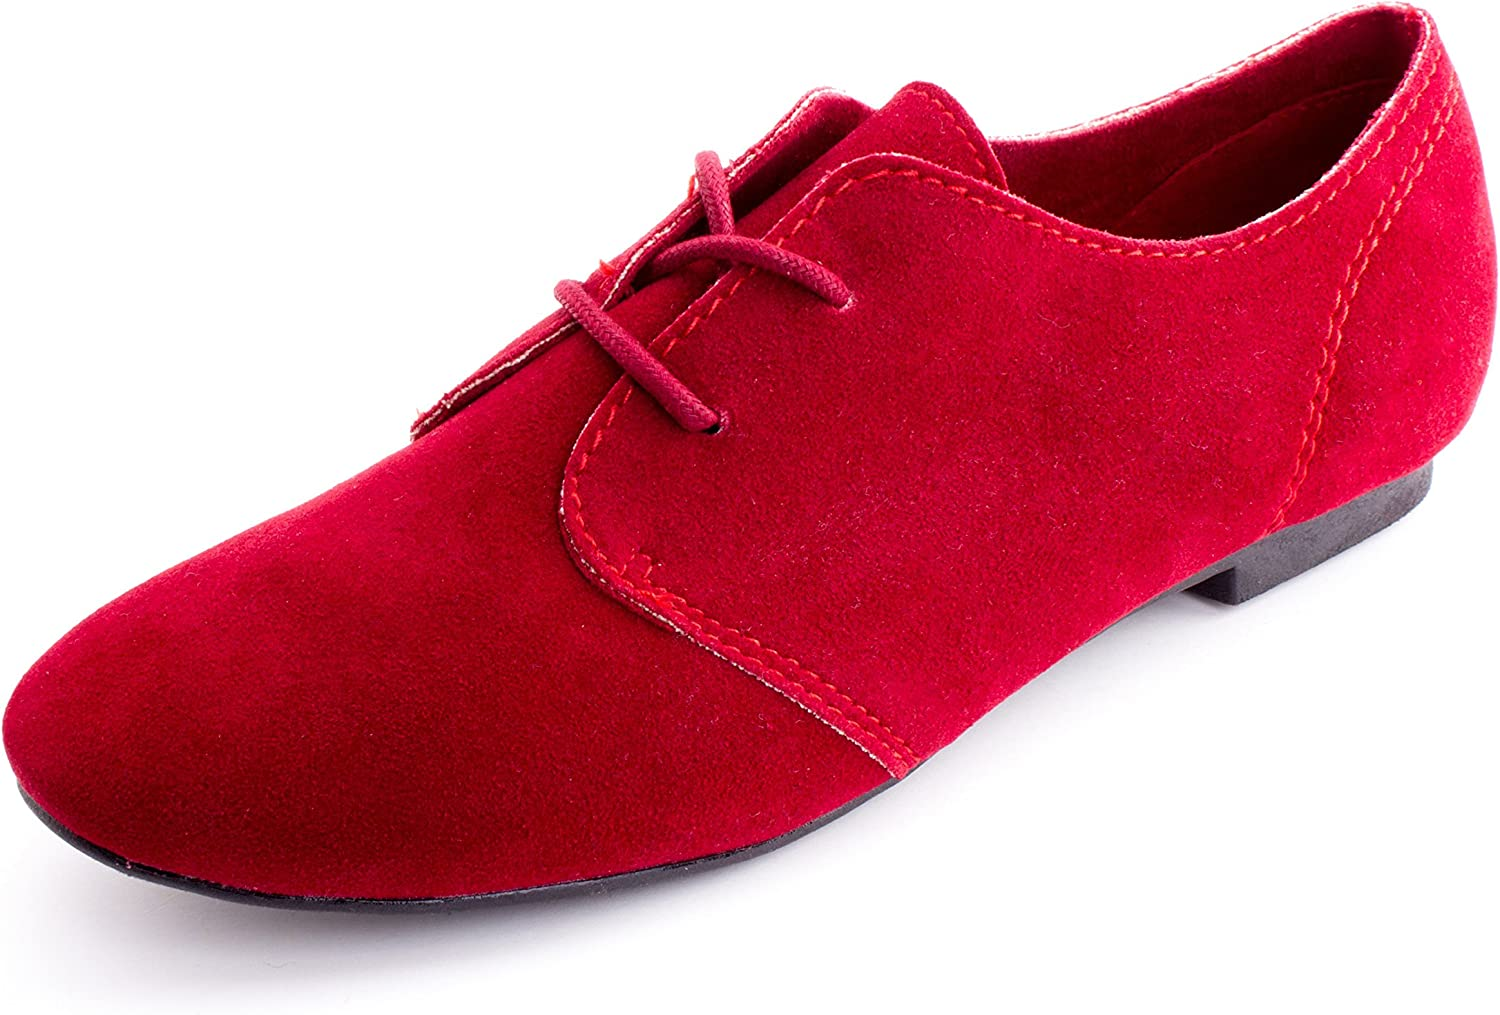 Kali Womens Lace Up Faux Suede Flat Oxford shoes (Adults)